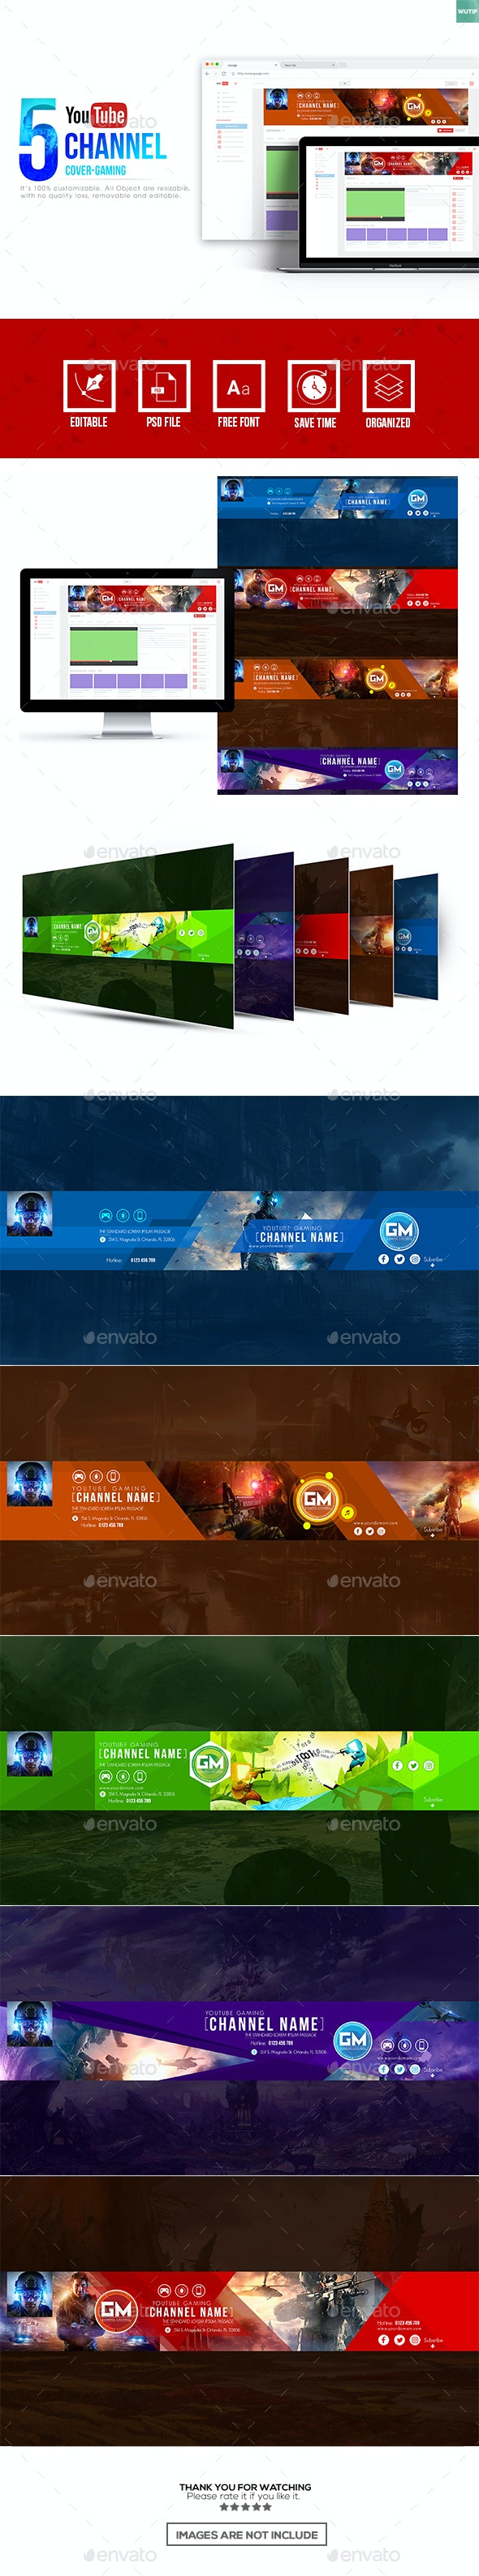 Gaming Channel - Youtube Banner Template - YouTube Social Media